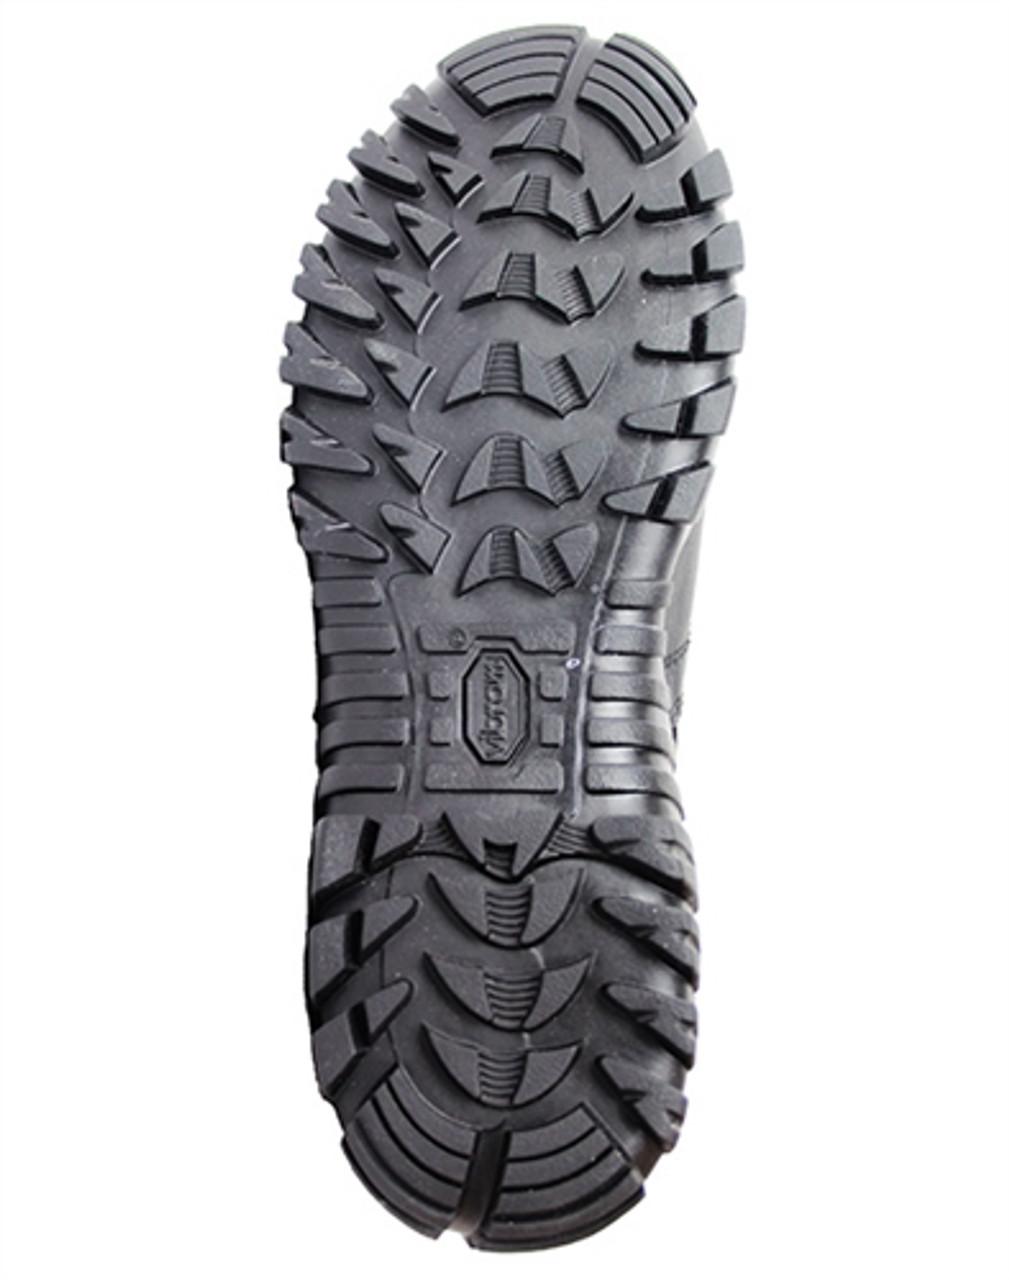 KHYBER Hot Weather Lightweight Tactical Boot from Hessen Tactical